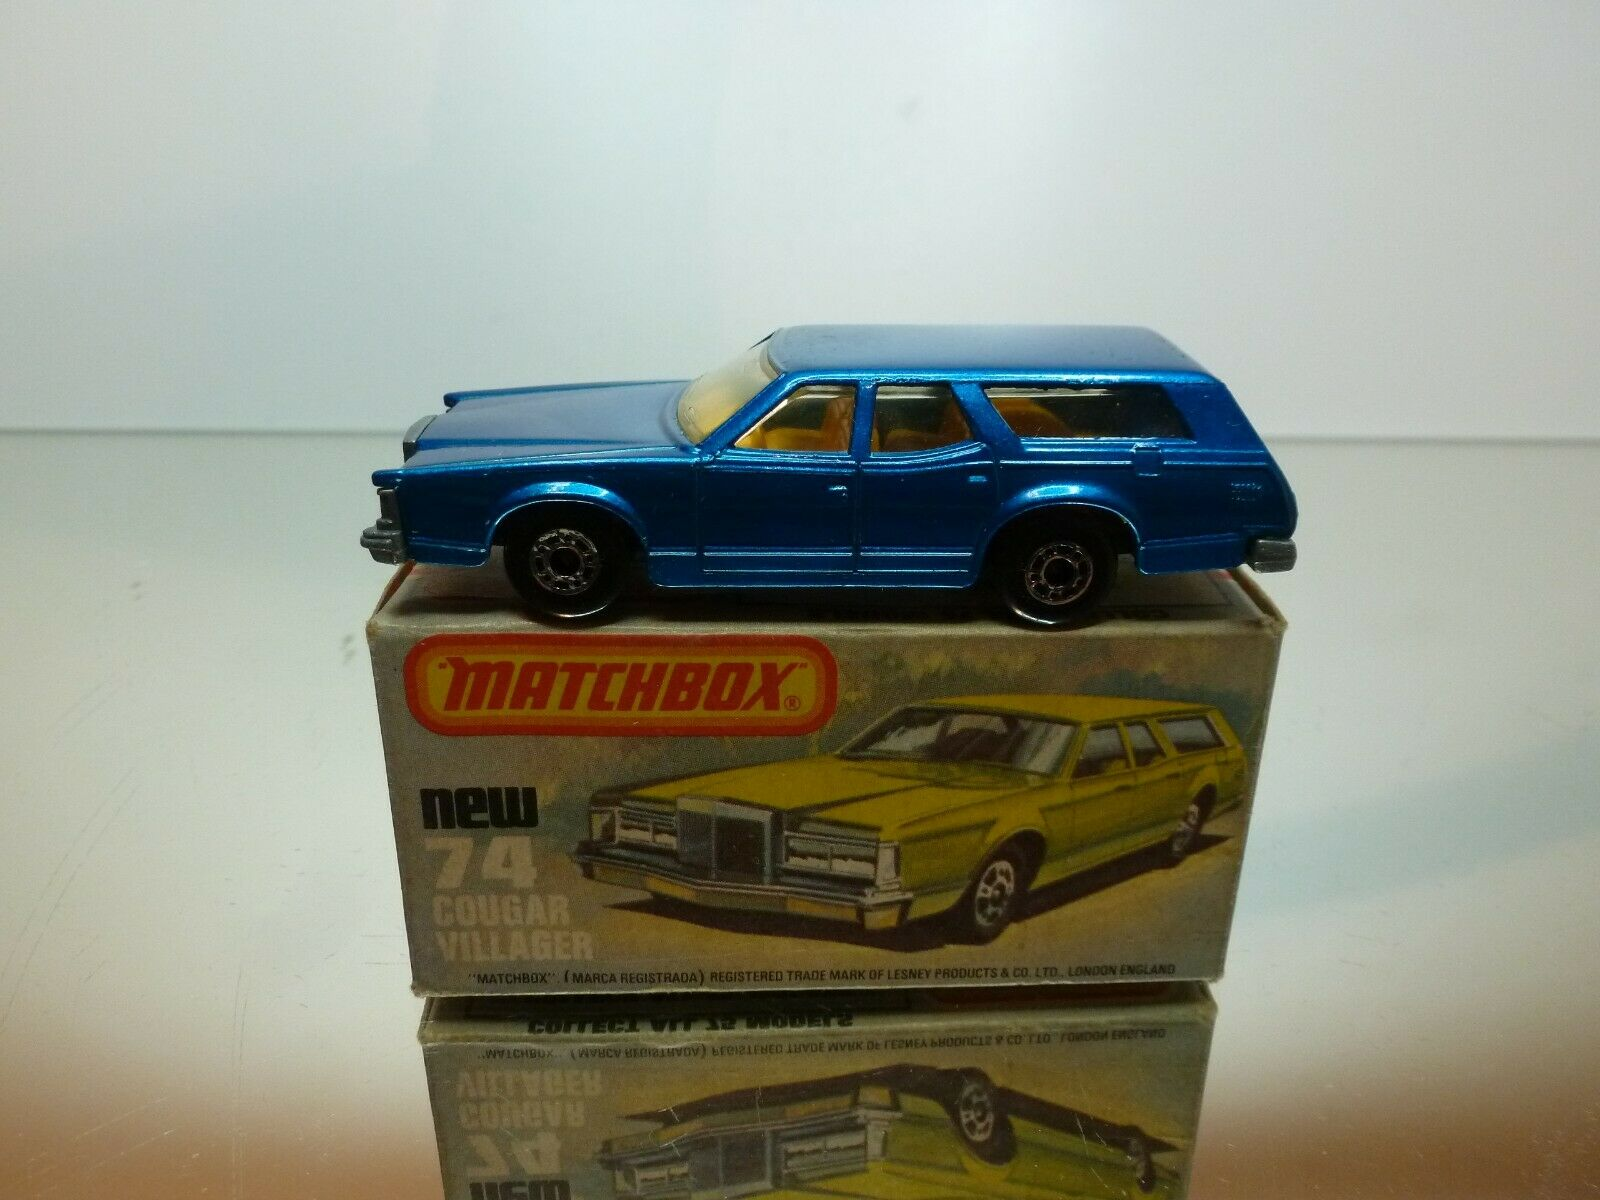 MATCHBOX SUPERFAST 74 MERCURY COUGAR VILLAGER - RARE Farbe - VERY GOOD IN BOX